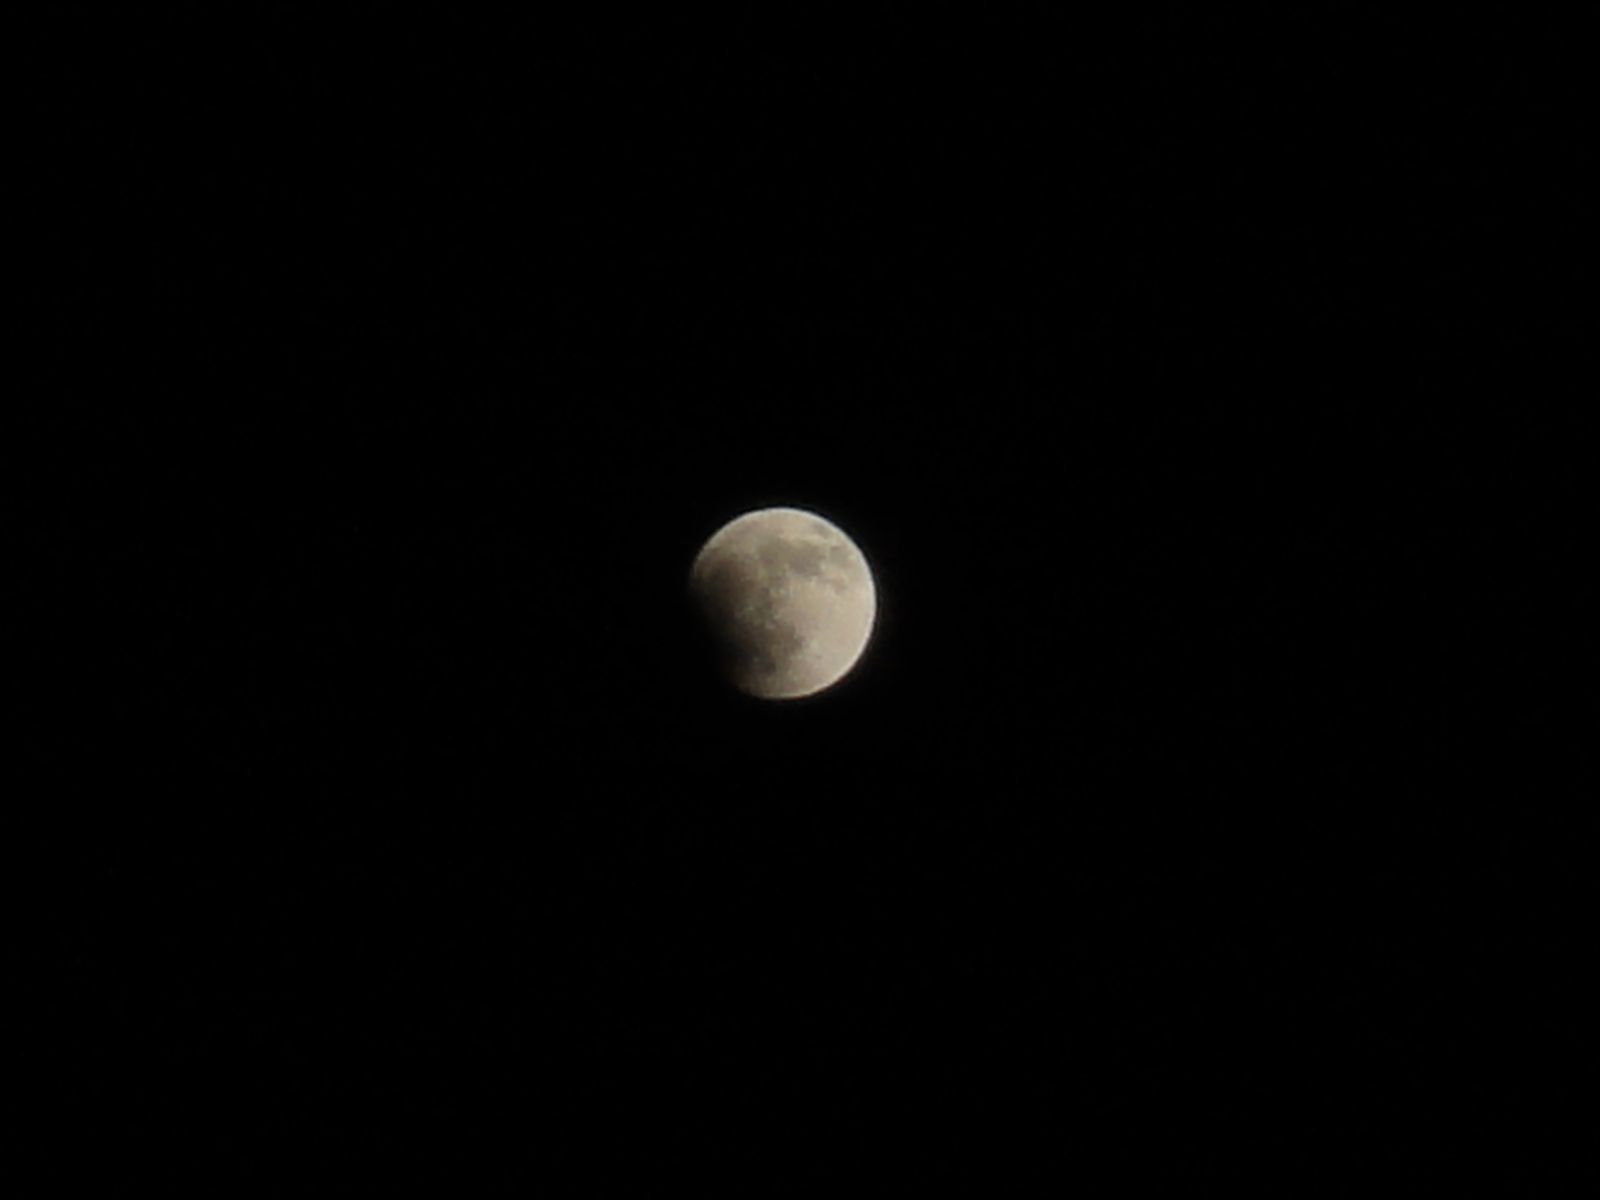 lunar_eclipse_016.jpg